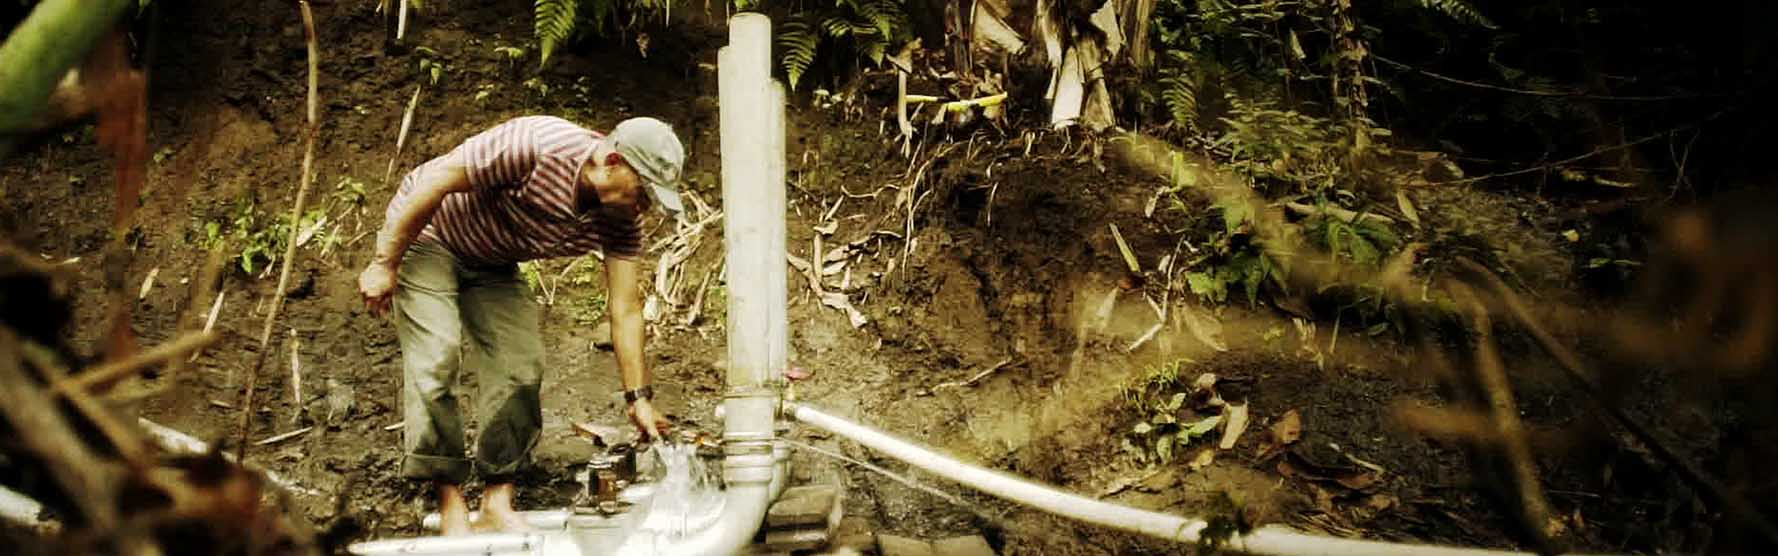 Founders' Valley: Sacred Water - Scarce Water, Indonesia